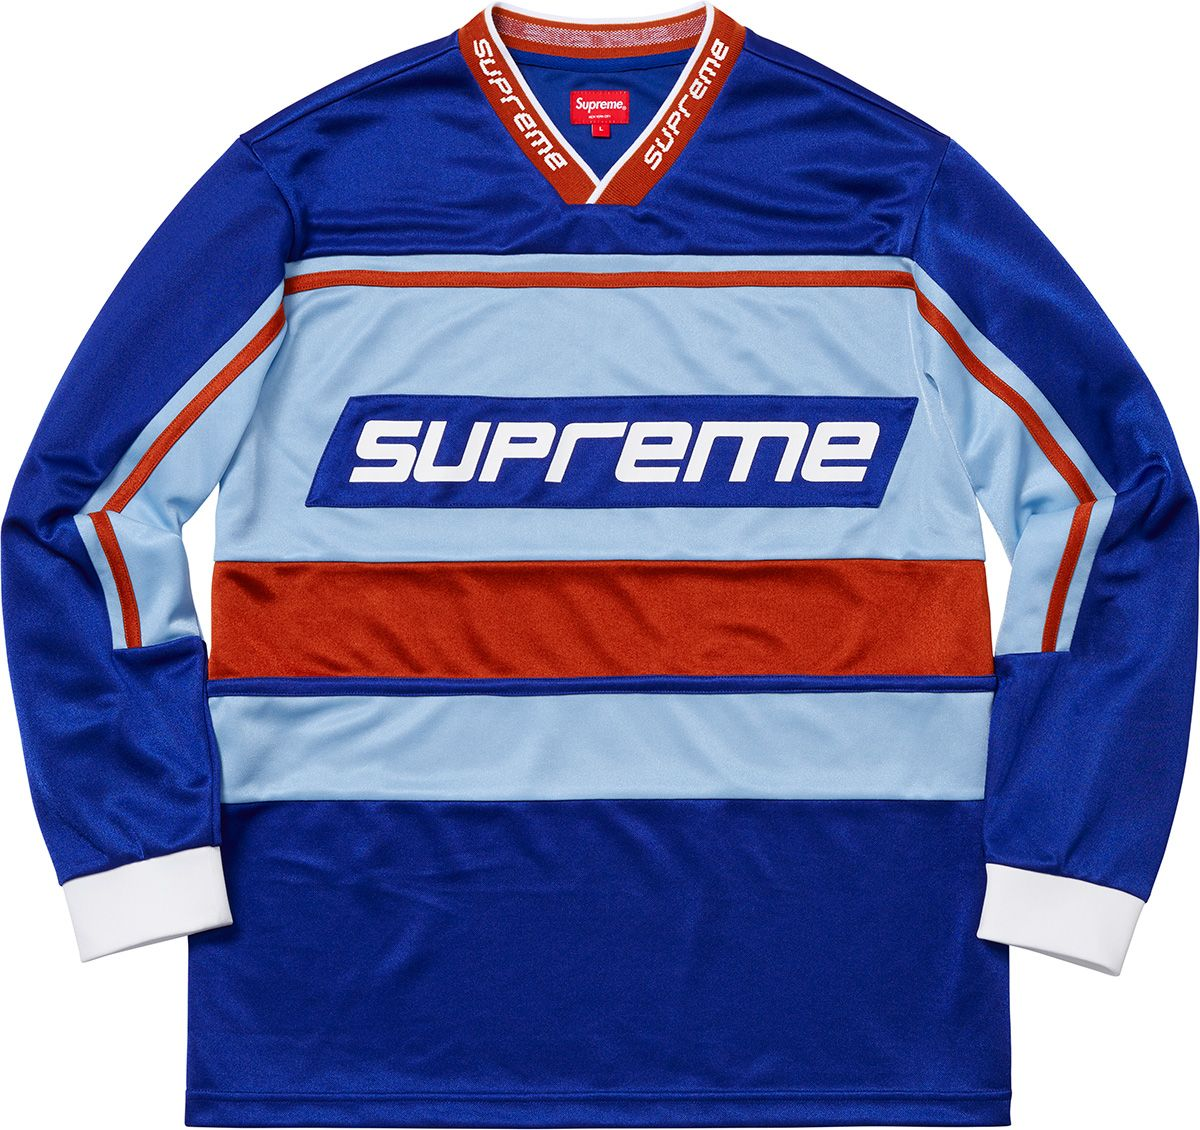 Supreme Warm Up Hockey Jersey Baseball Jersey Outfit Jersey Outfit Mens Tops